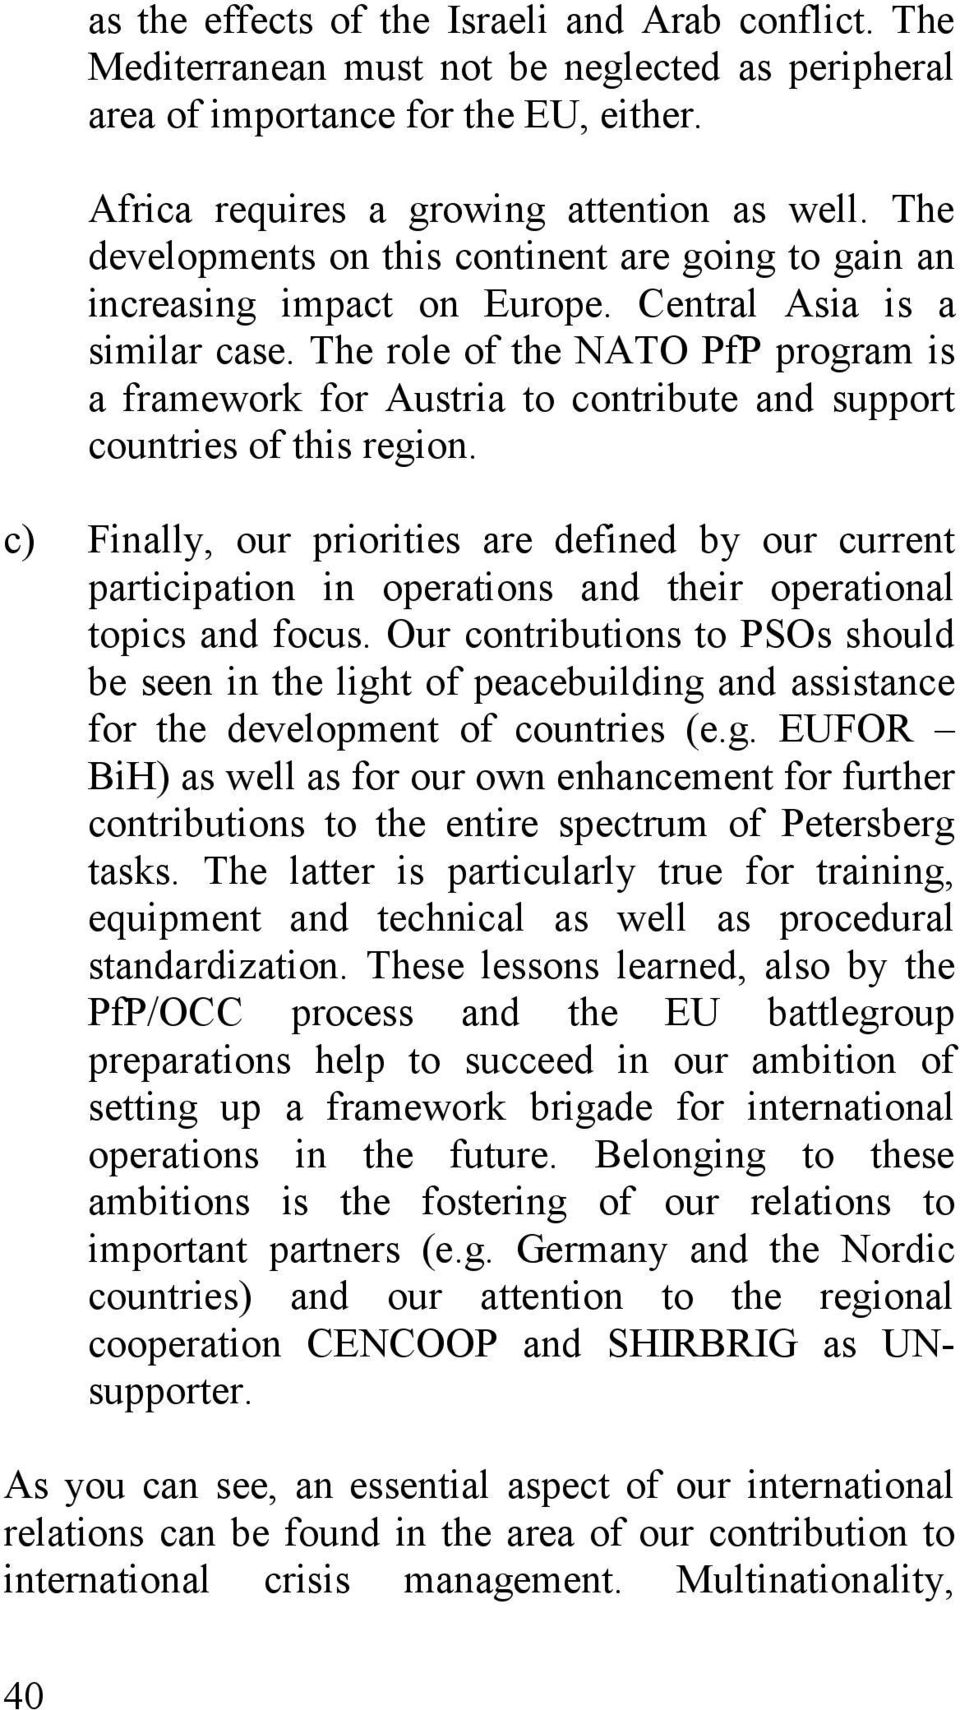 The role of the NATO PfP program is a framework for Austria to contribute and support countries of this region.